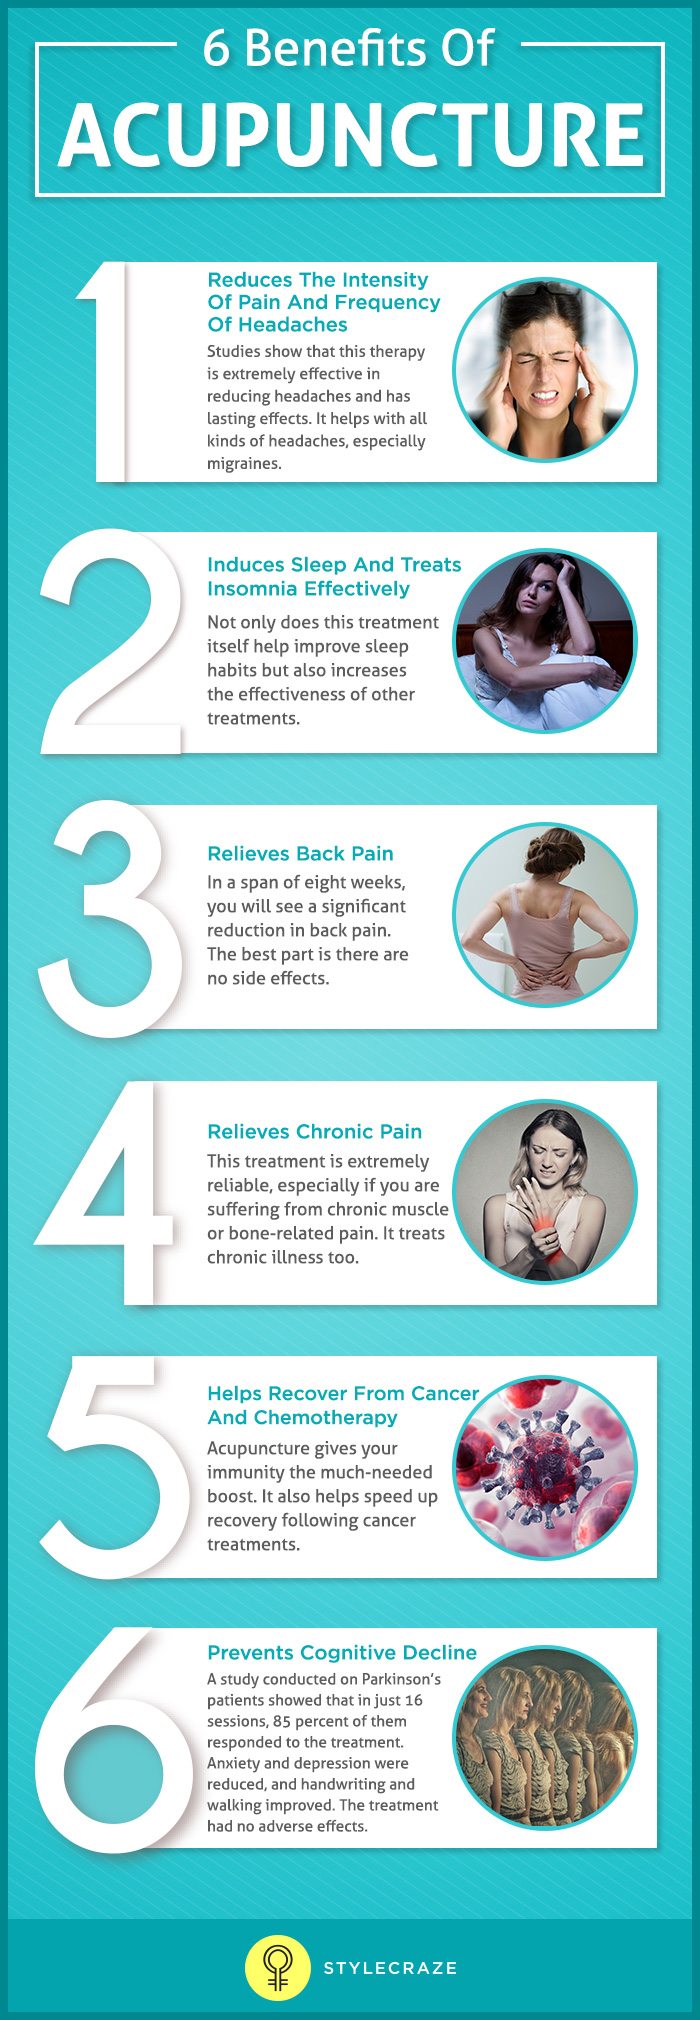 6-Benefits-Of-Acupuncture (2)